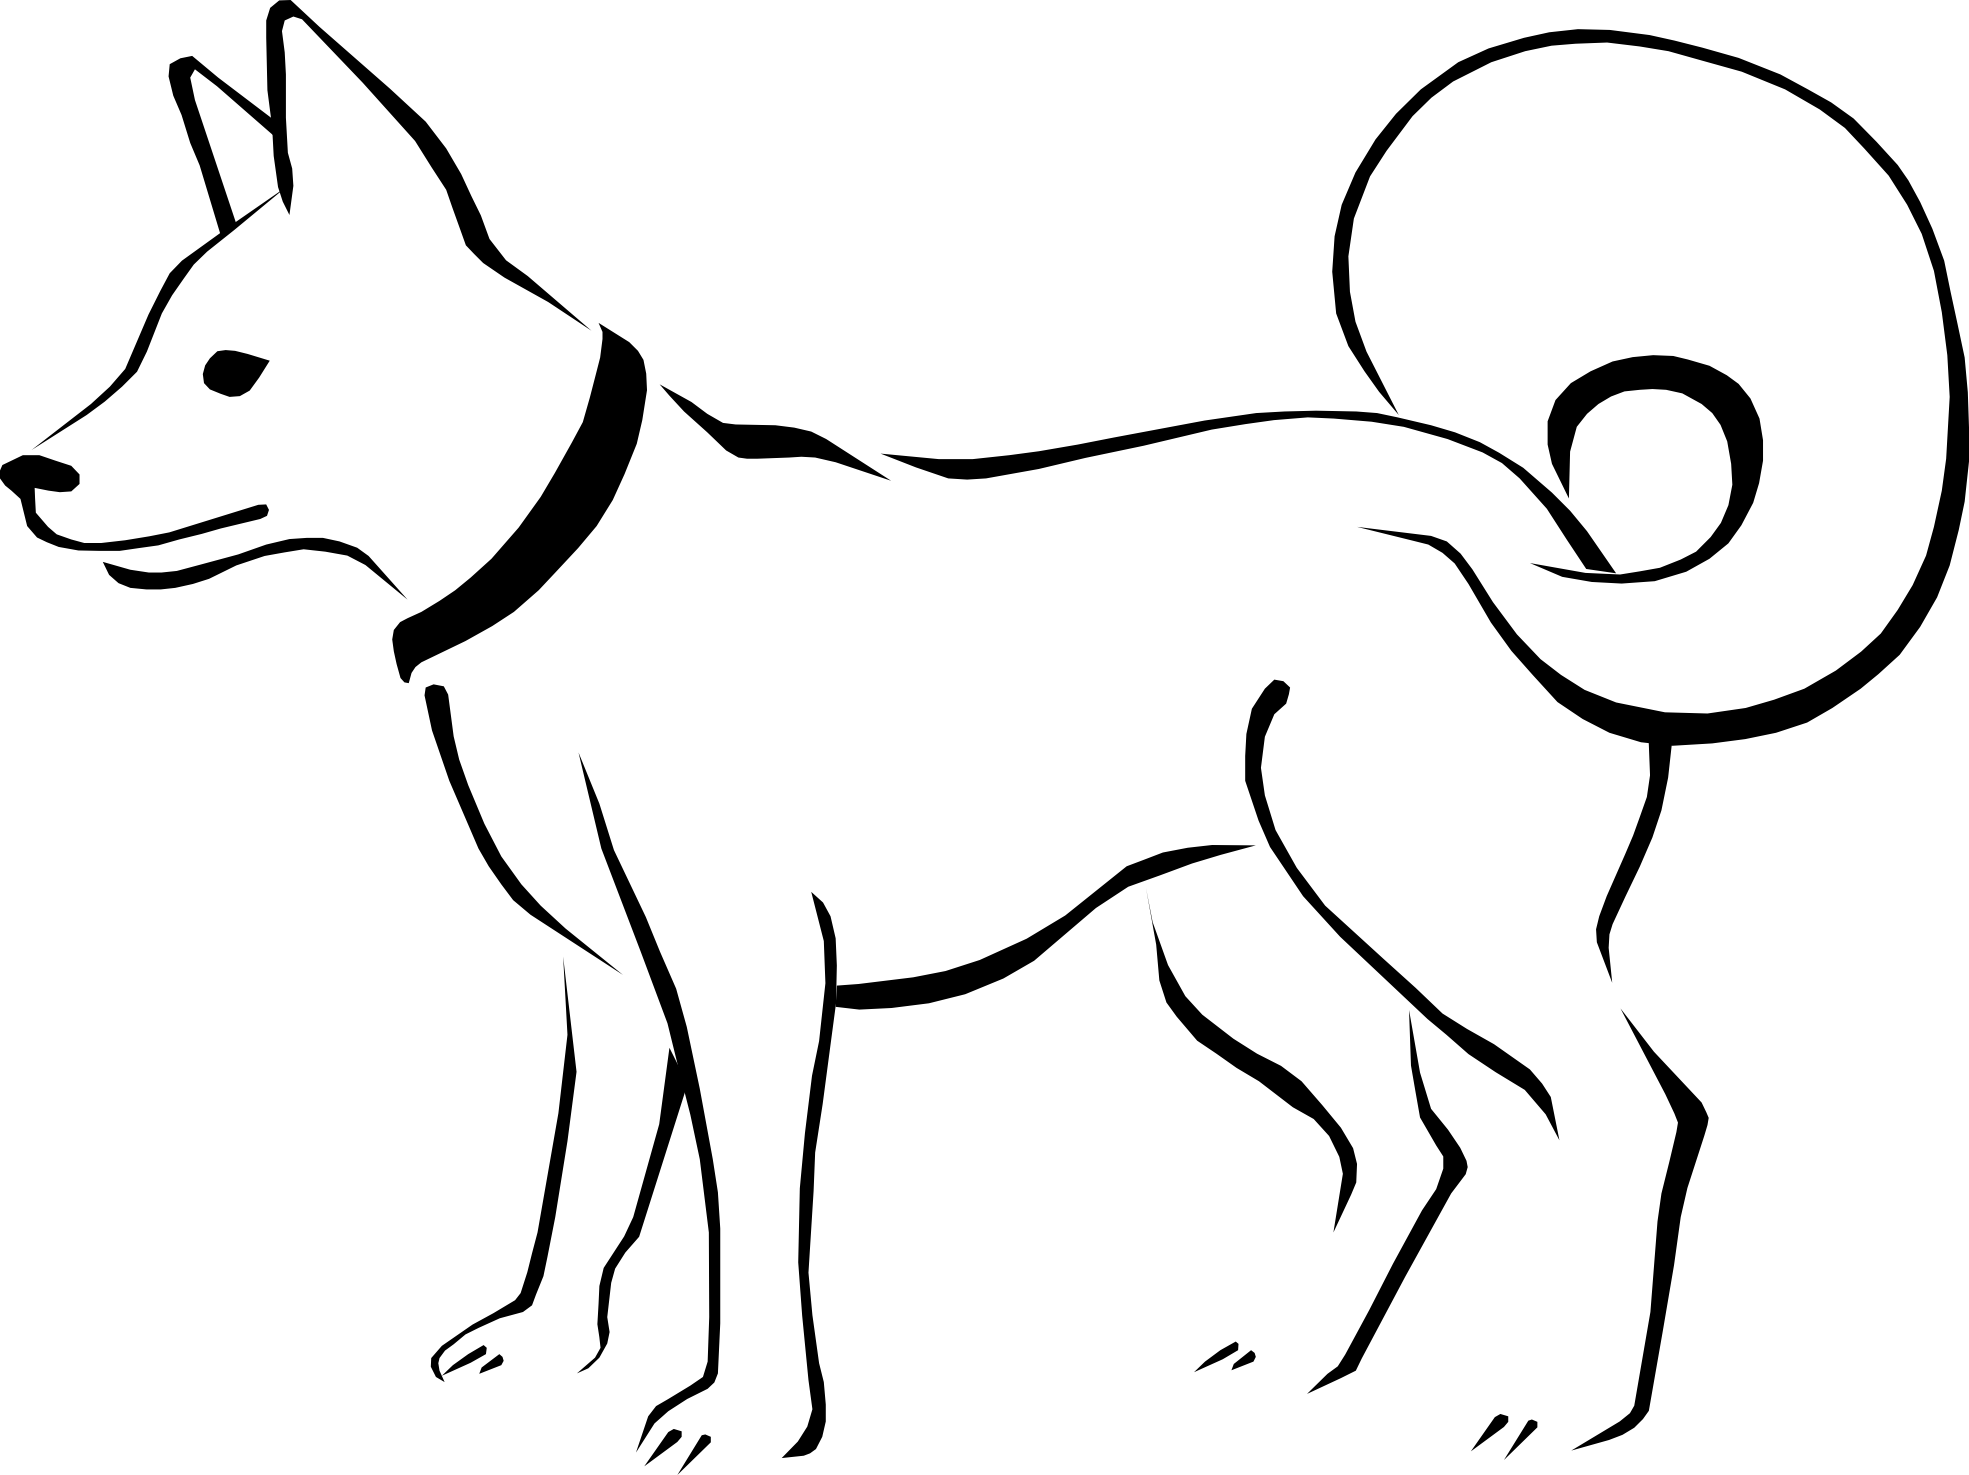 Puppy clipart 4 puppy. Free dog line art